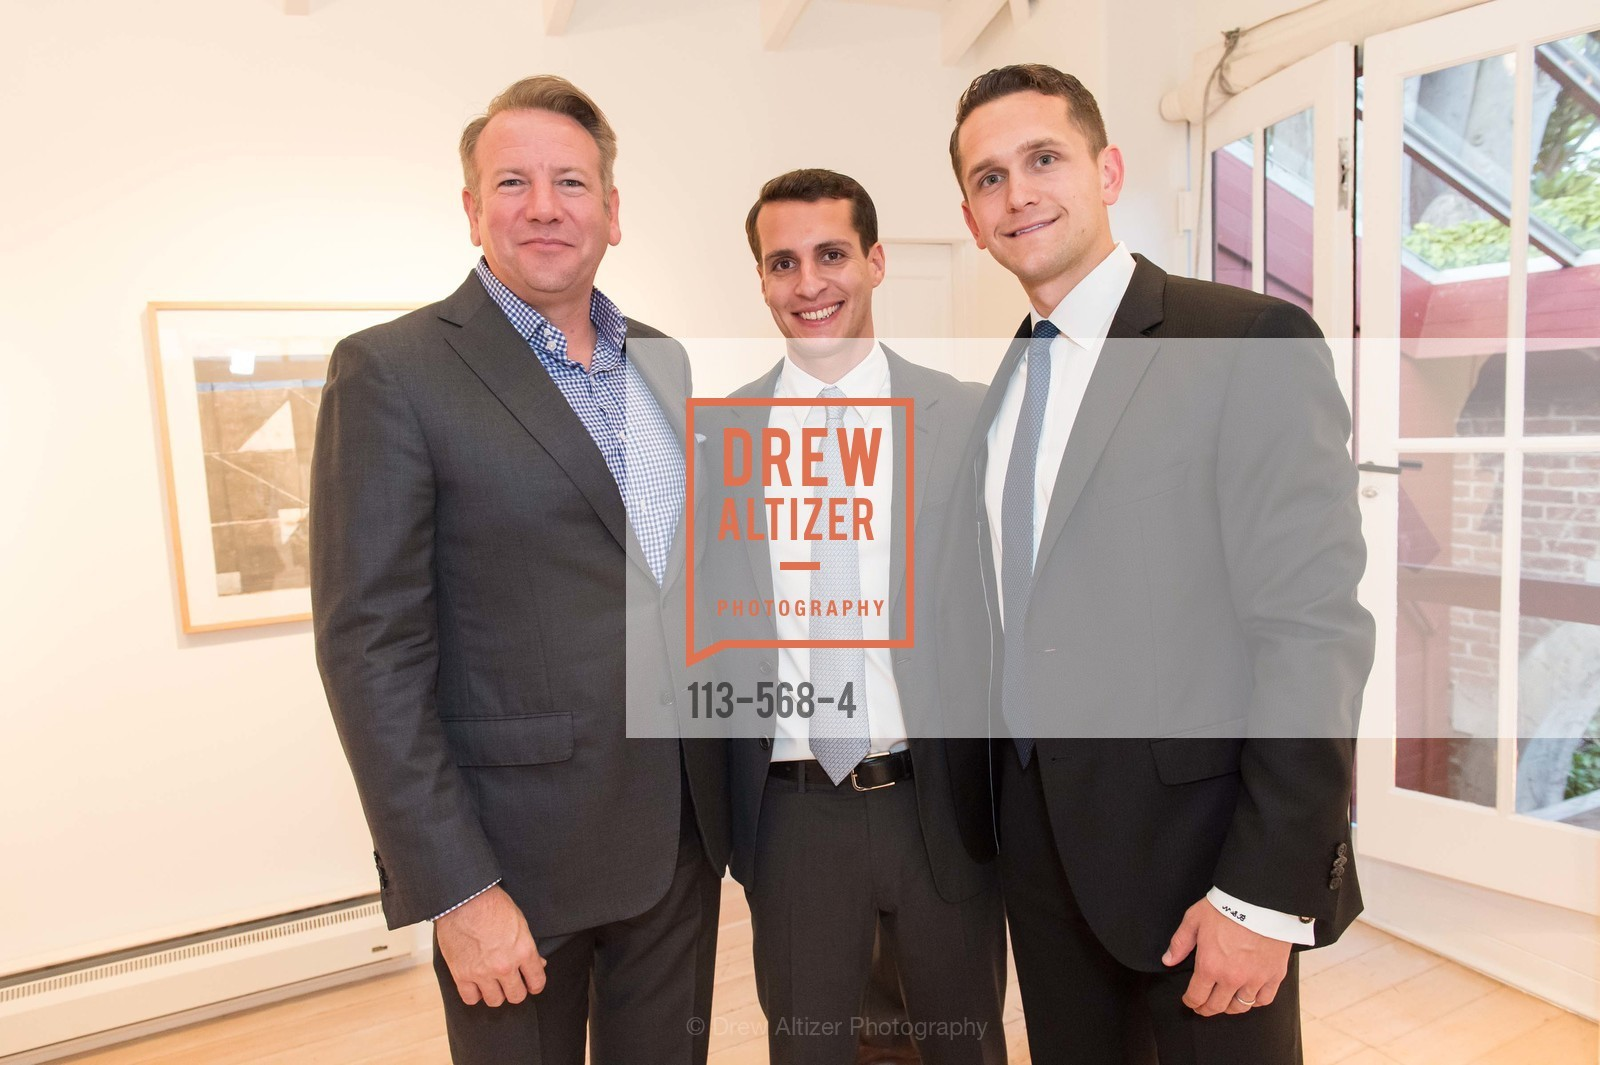 Dennis Hearst, Maxx Traina, Neill Bassi, SOTHEBY'S  Hosts a Private Viewing of Highlights from the Collection of MRS. PAUL MELLON, US, September 17th, 2014,Drew Altizer, Drew Altizer Photography, full-service agency, private events, San Francisco photographer, photographer california